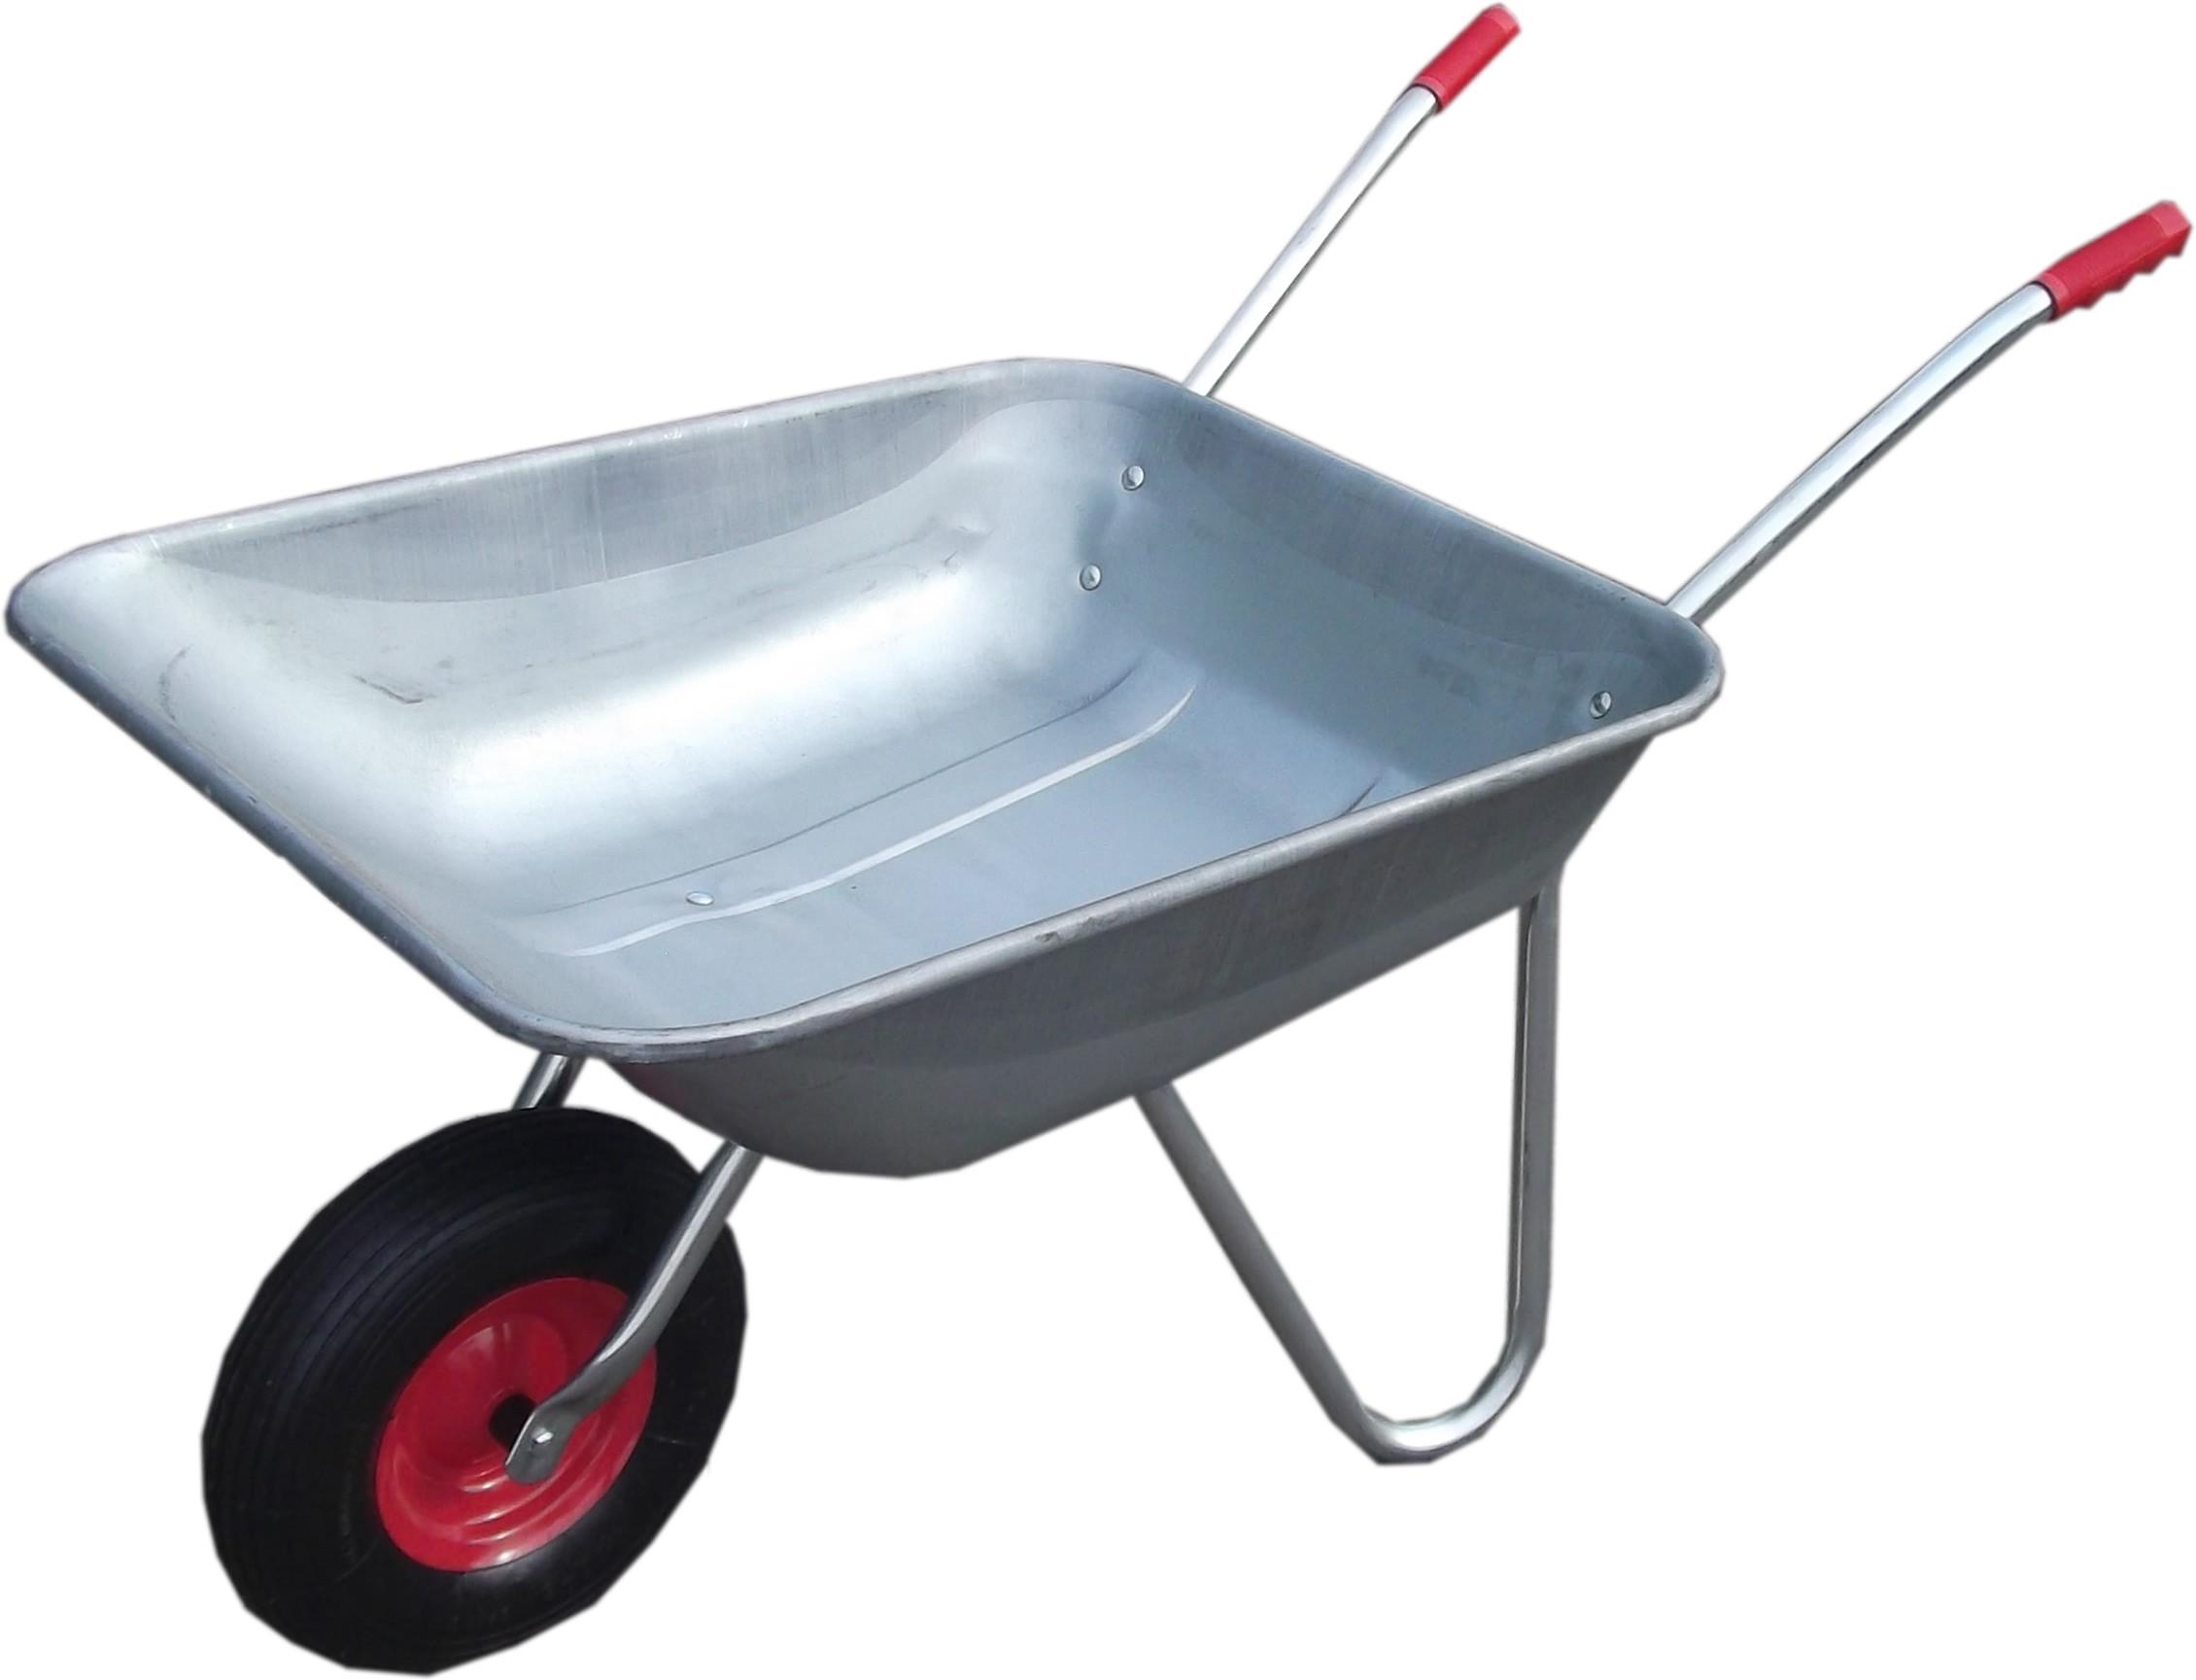 Wheelbarrow with tools clipart picture freeuse download Galvanised Wheelbarrow - Wheelbarrows Sack Trucks - Garden ... picture freeuse download